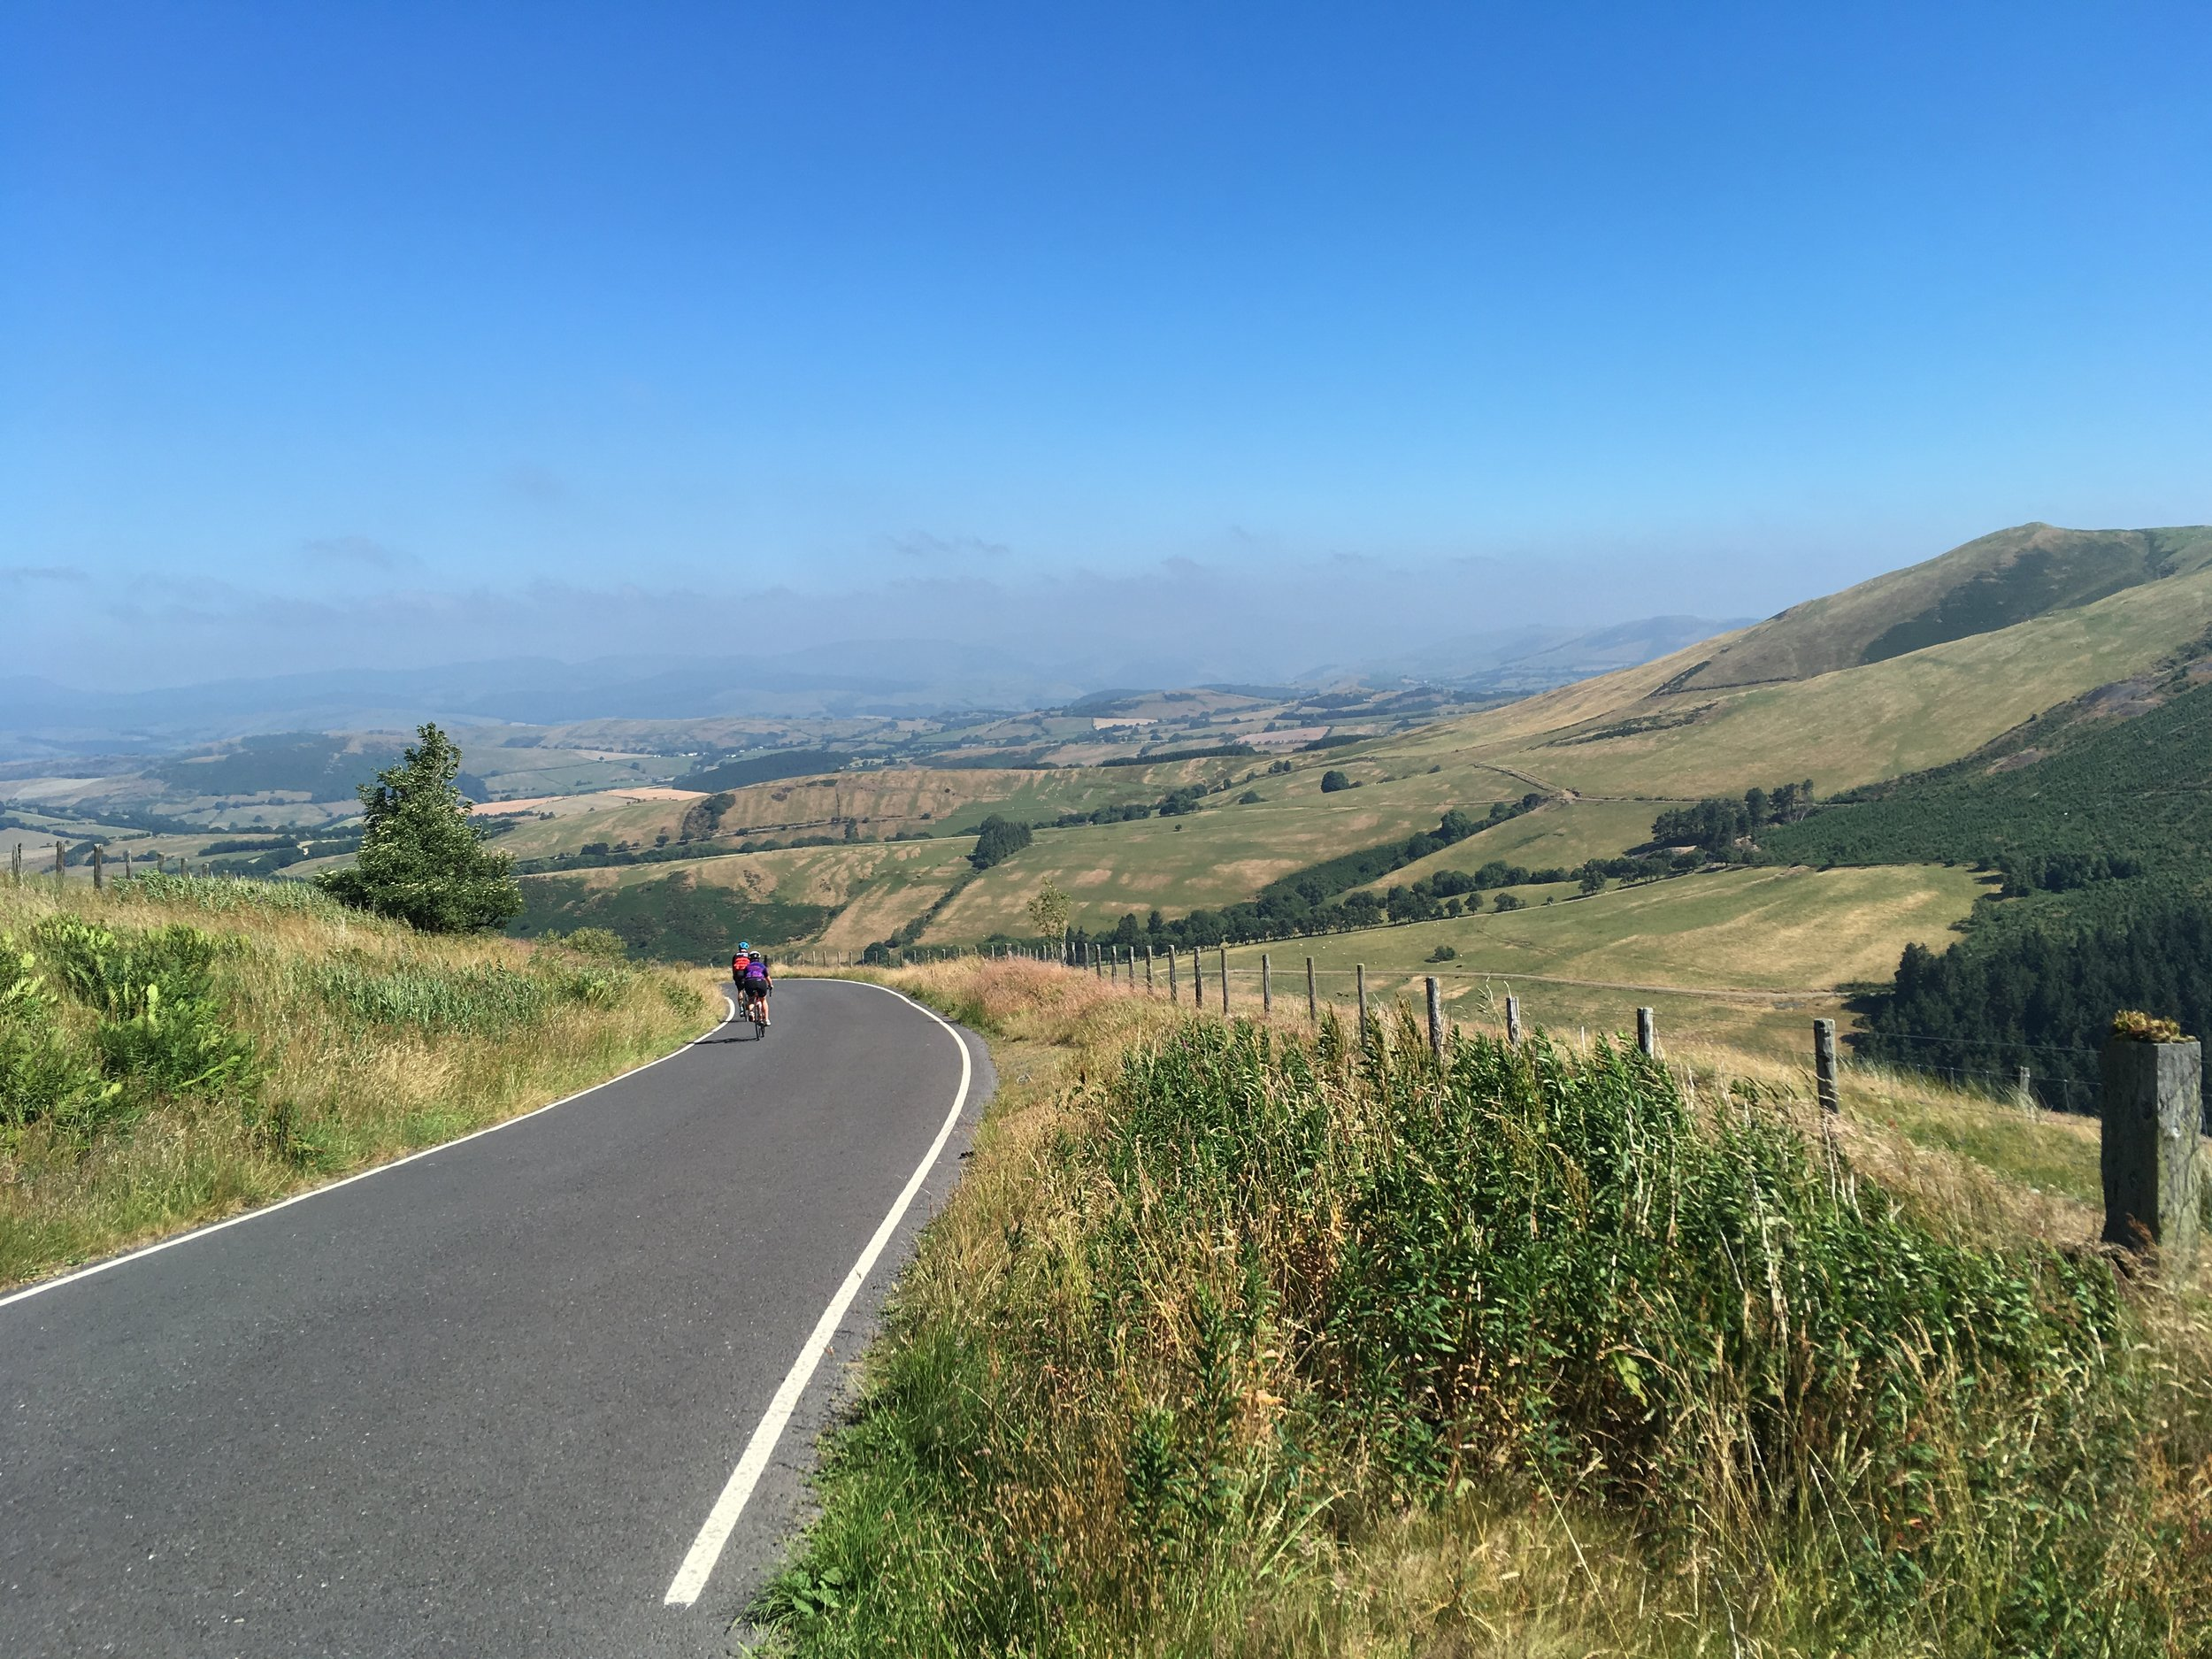 Reached the top and it's all downhill now! The beautiful views of mid-Wales this year.